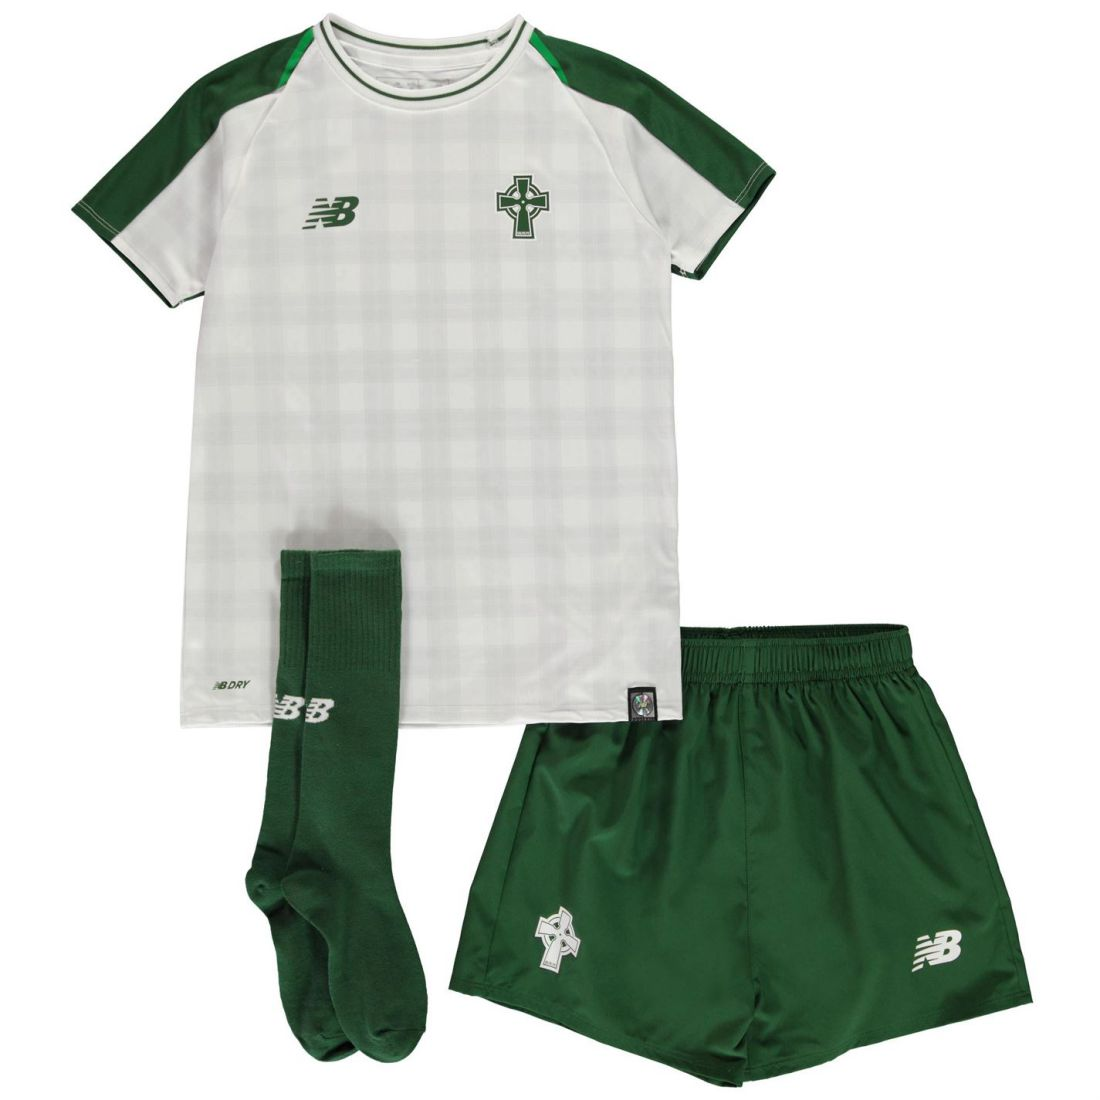 8c1779c4a Details about New Balance Celtic Away Mini Kit 2018 2019 Childrens Domestic  Minikits Football